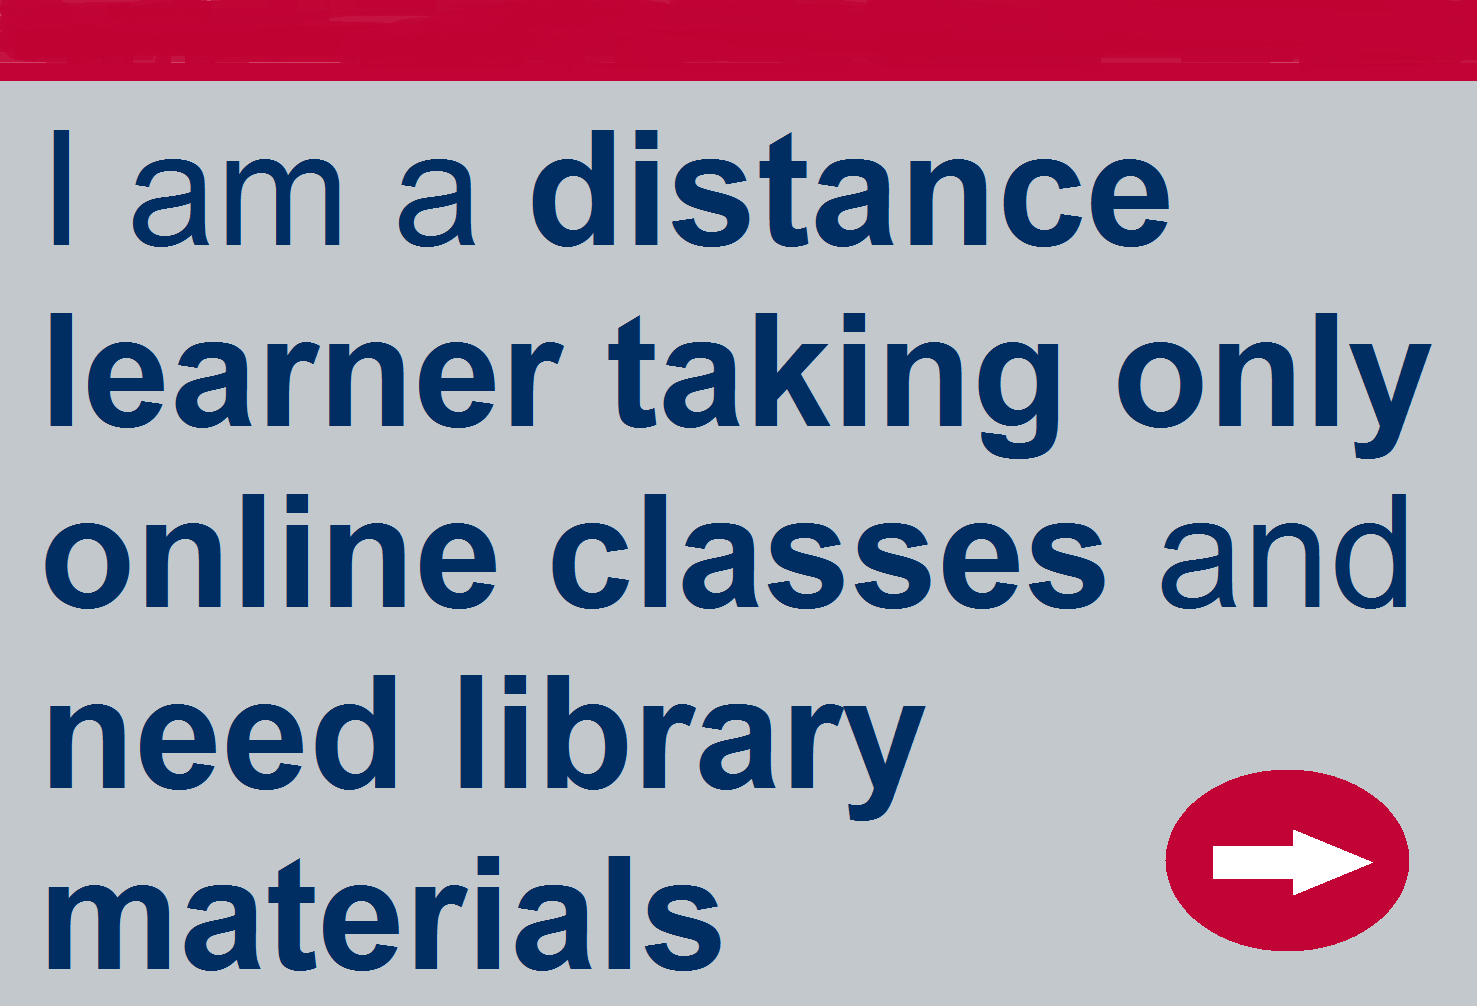 Distance learner taking only online classes and need library materials